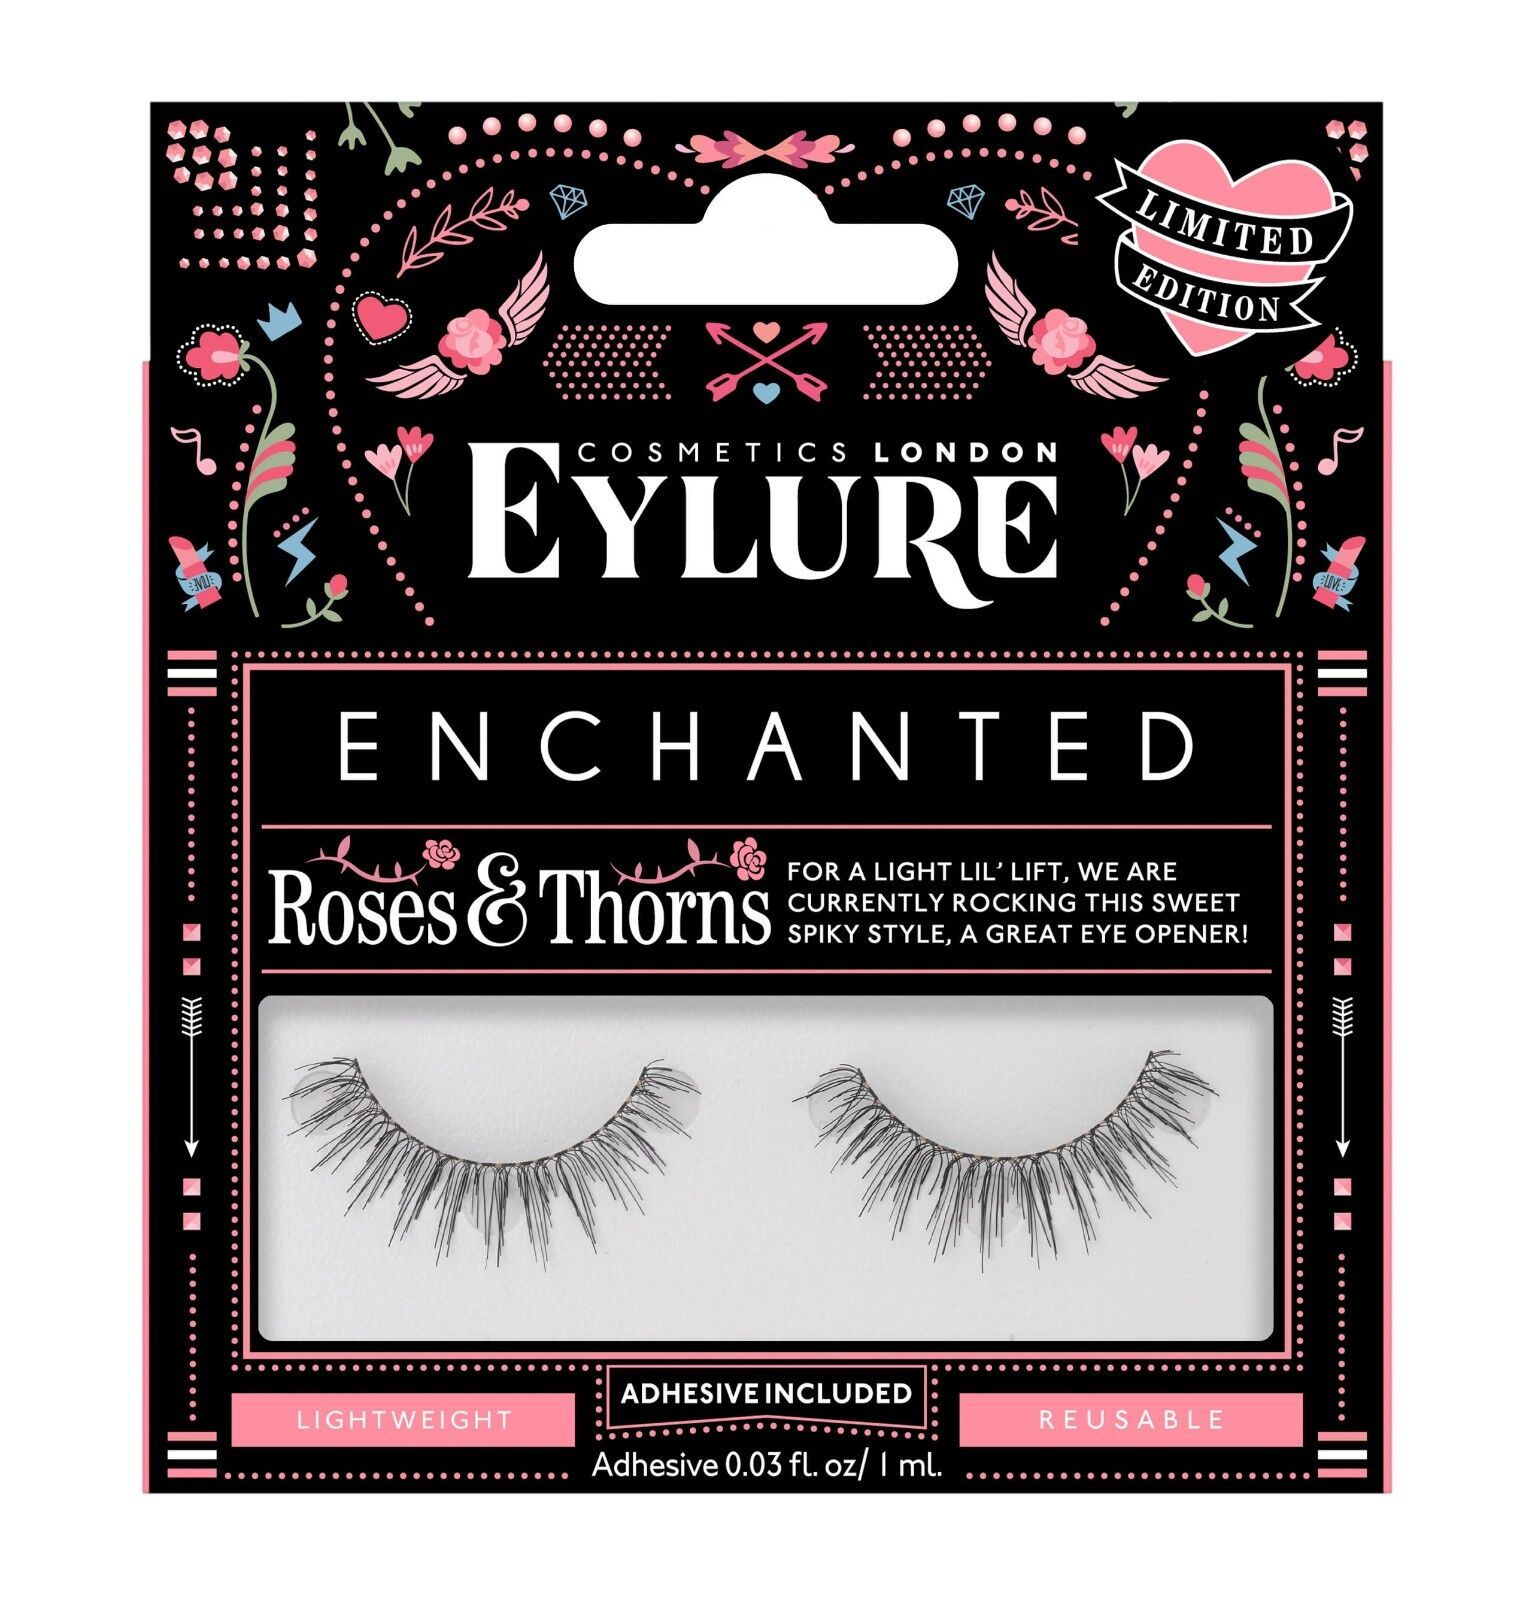 ac0597867b2 Eylure Enchanted Eyelashes - Roses & Thorns False Lashes NEW ...